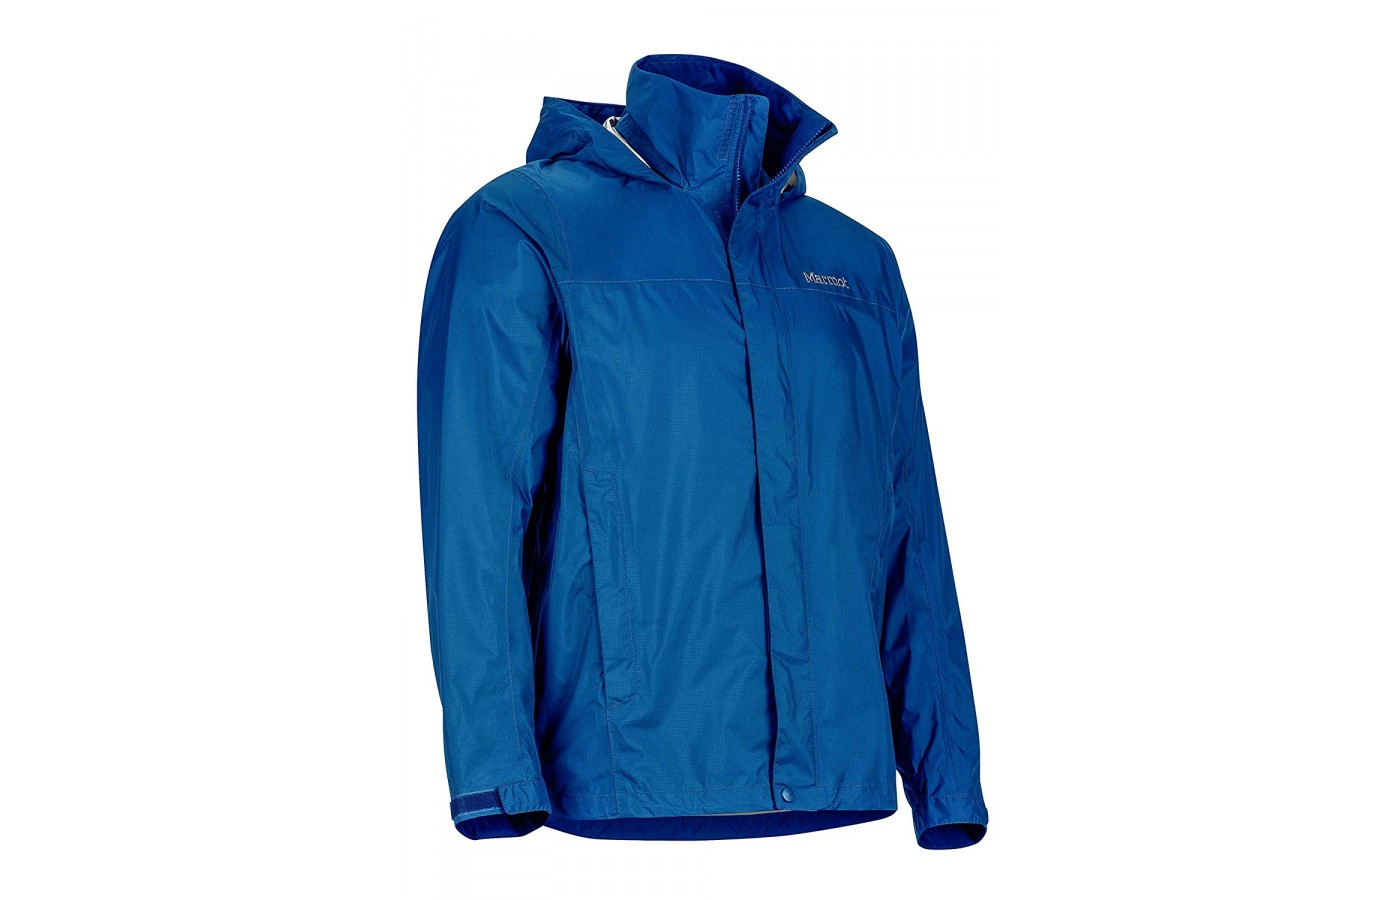 The Marmot PreCip jacket is a killer jacket offered at $100.